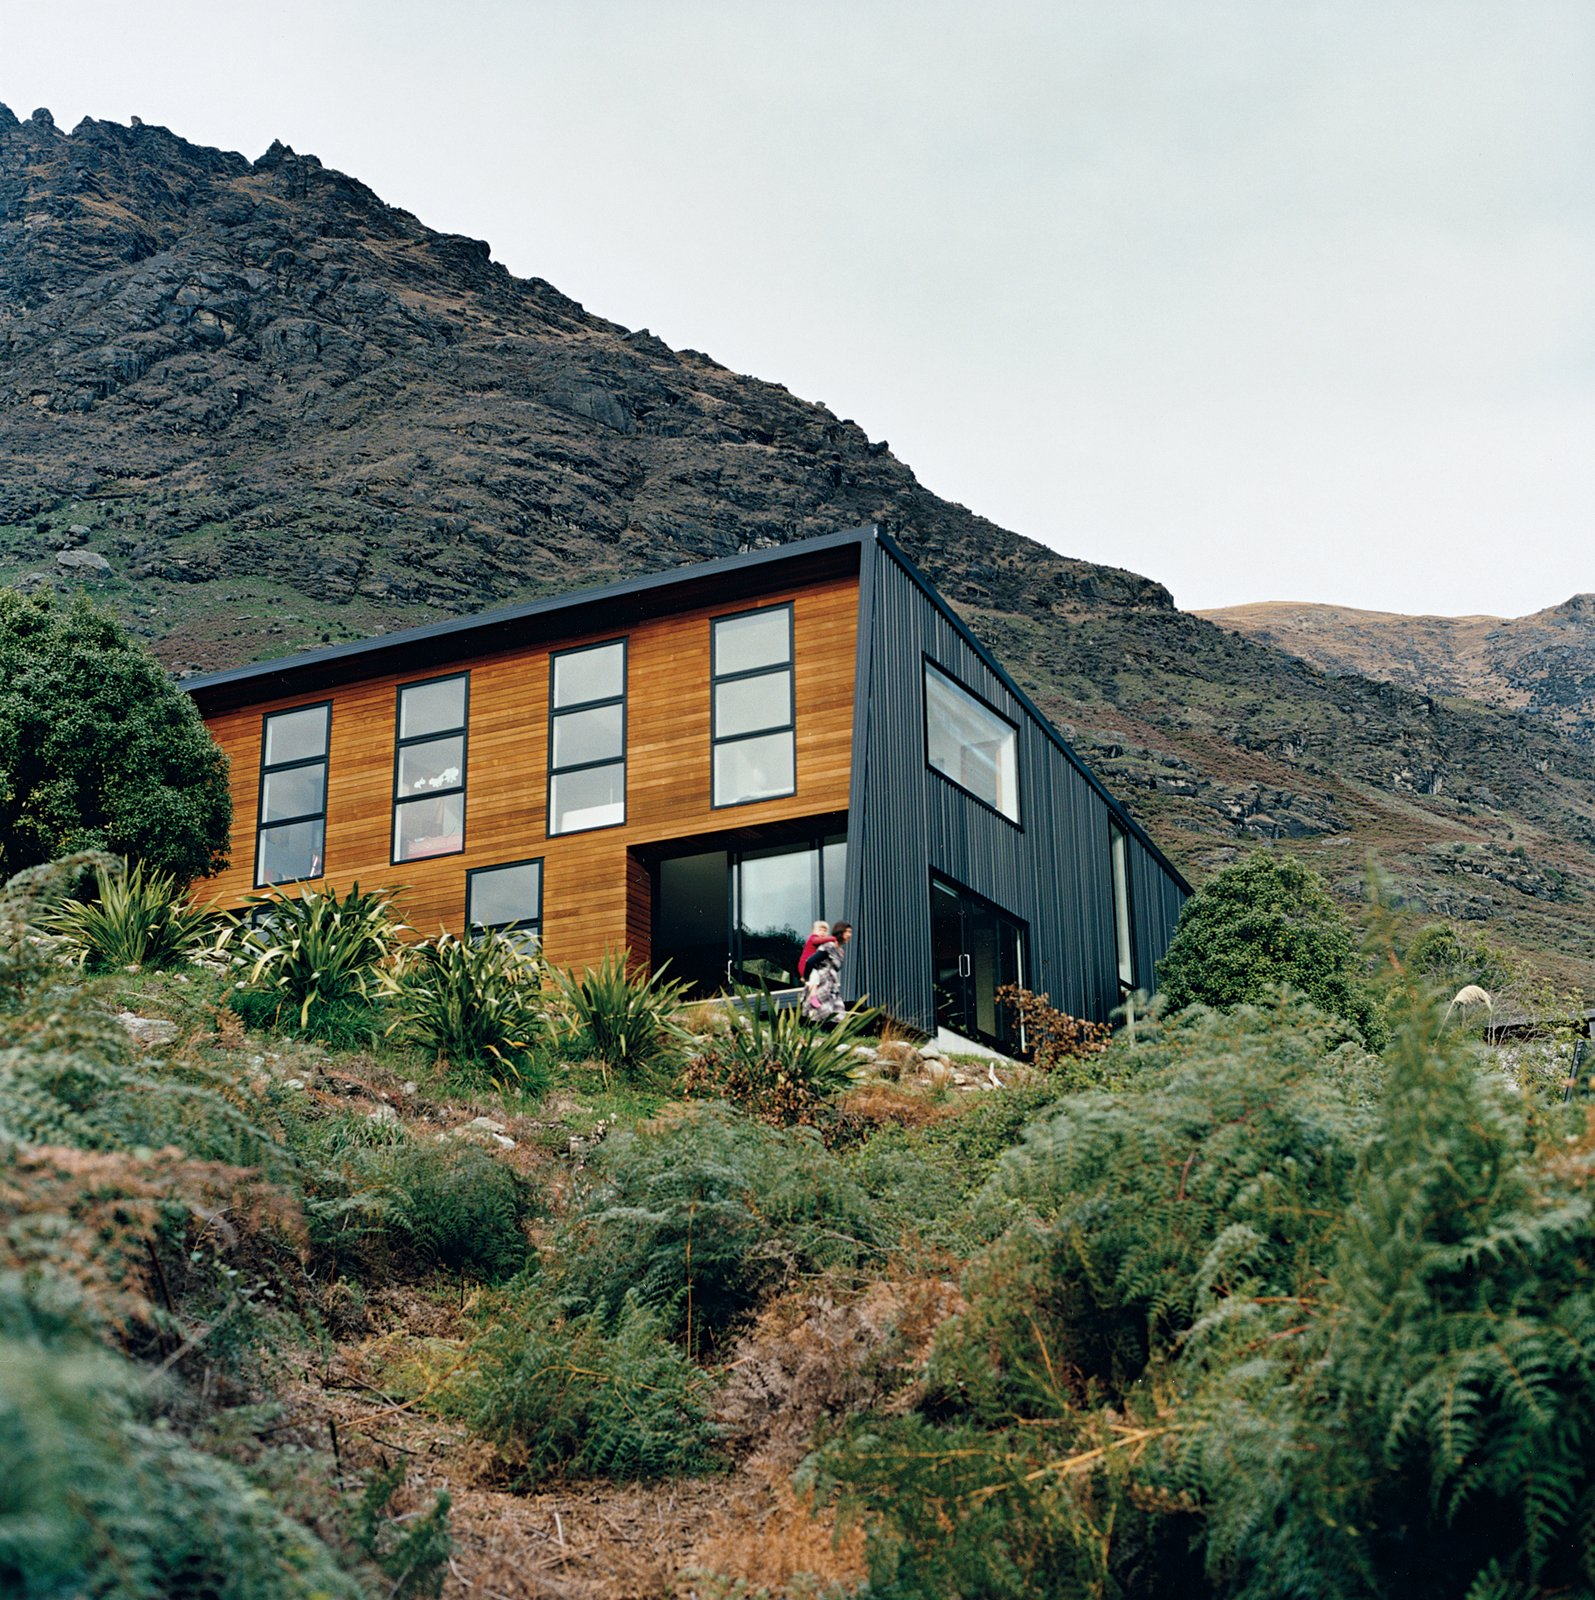 The location on the shores of a small bay means it is sheltered from cold southerly winds. The alpine location provided plenty of inspiration for landscaping, which Ritchie and Kerr elected to keep as minimal as possible, as if the home had landed on its site with as little disturbance or alteration as possible. Tagged: Exterior, House, Metal Roof Material, Wood Siding Material, and Metal Siding Material.  Drift Bay House by Dwell